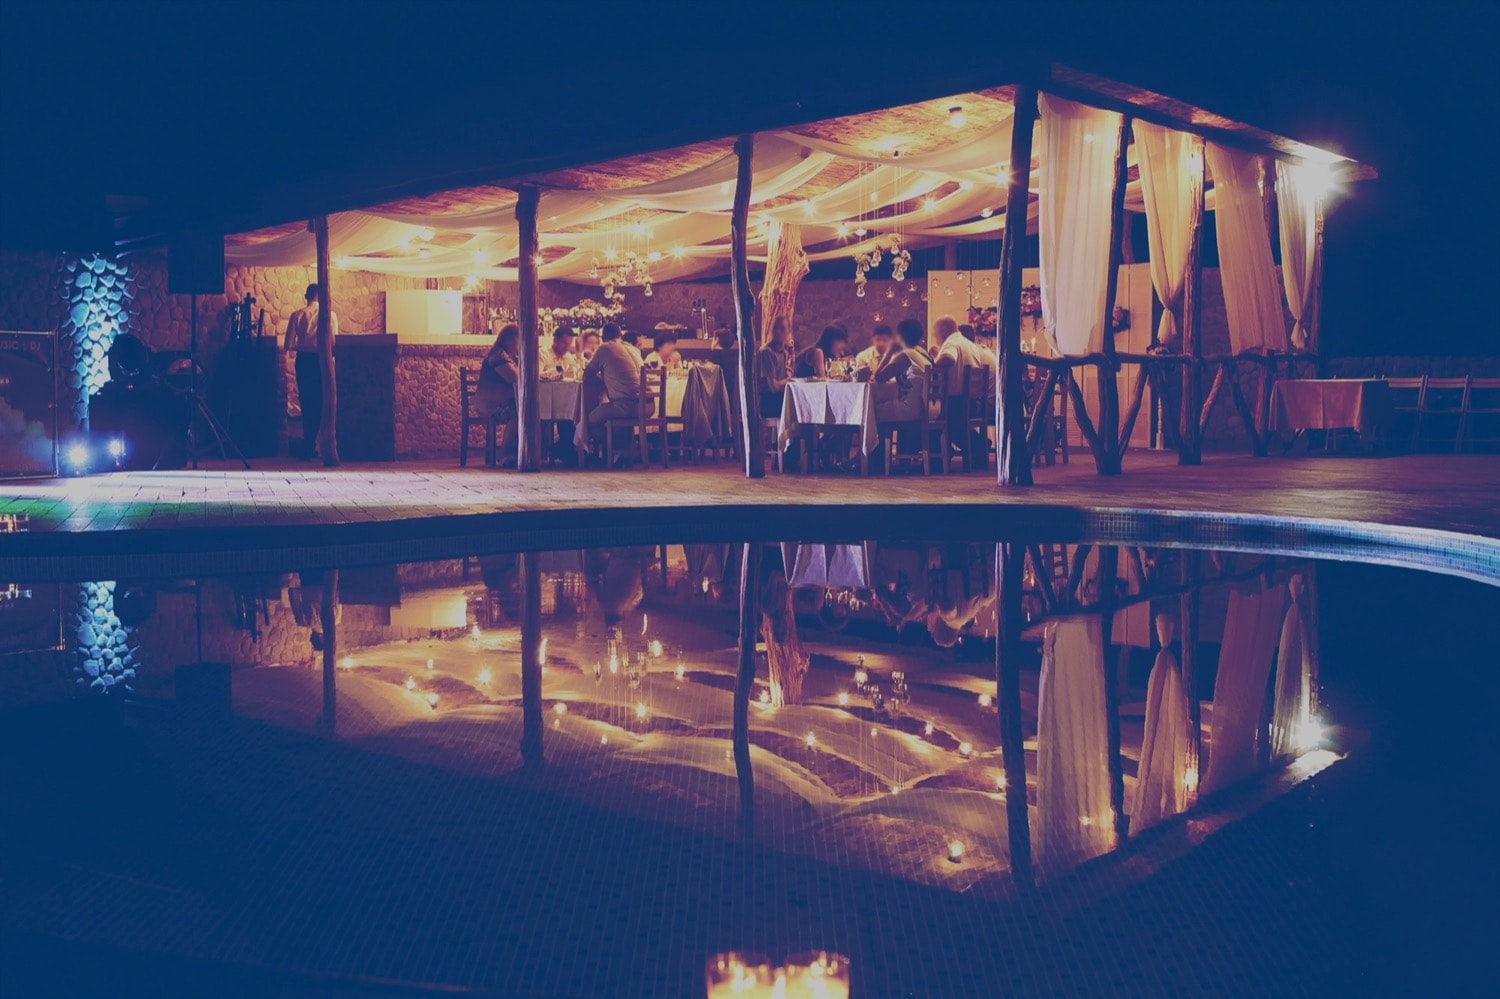 A large group of people eating a meal at night in an outdoor restaurant, next to a pool.